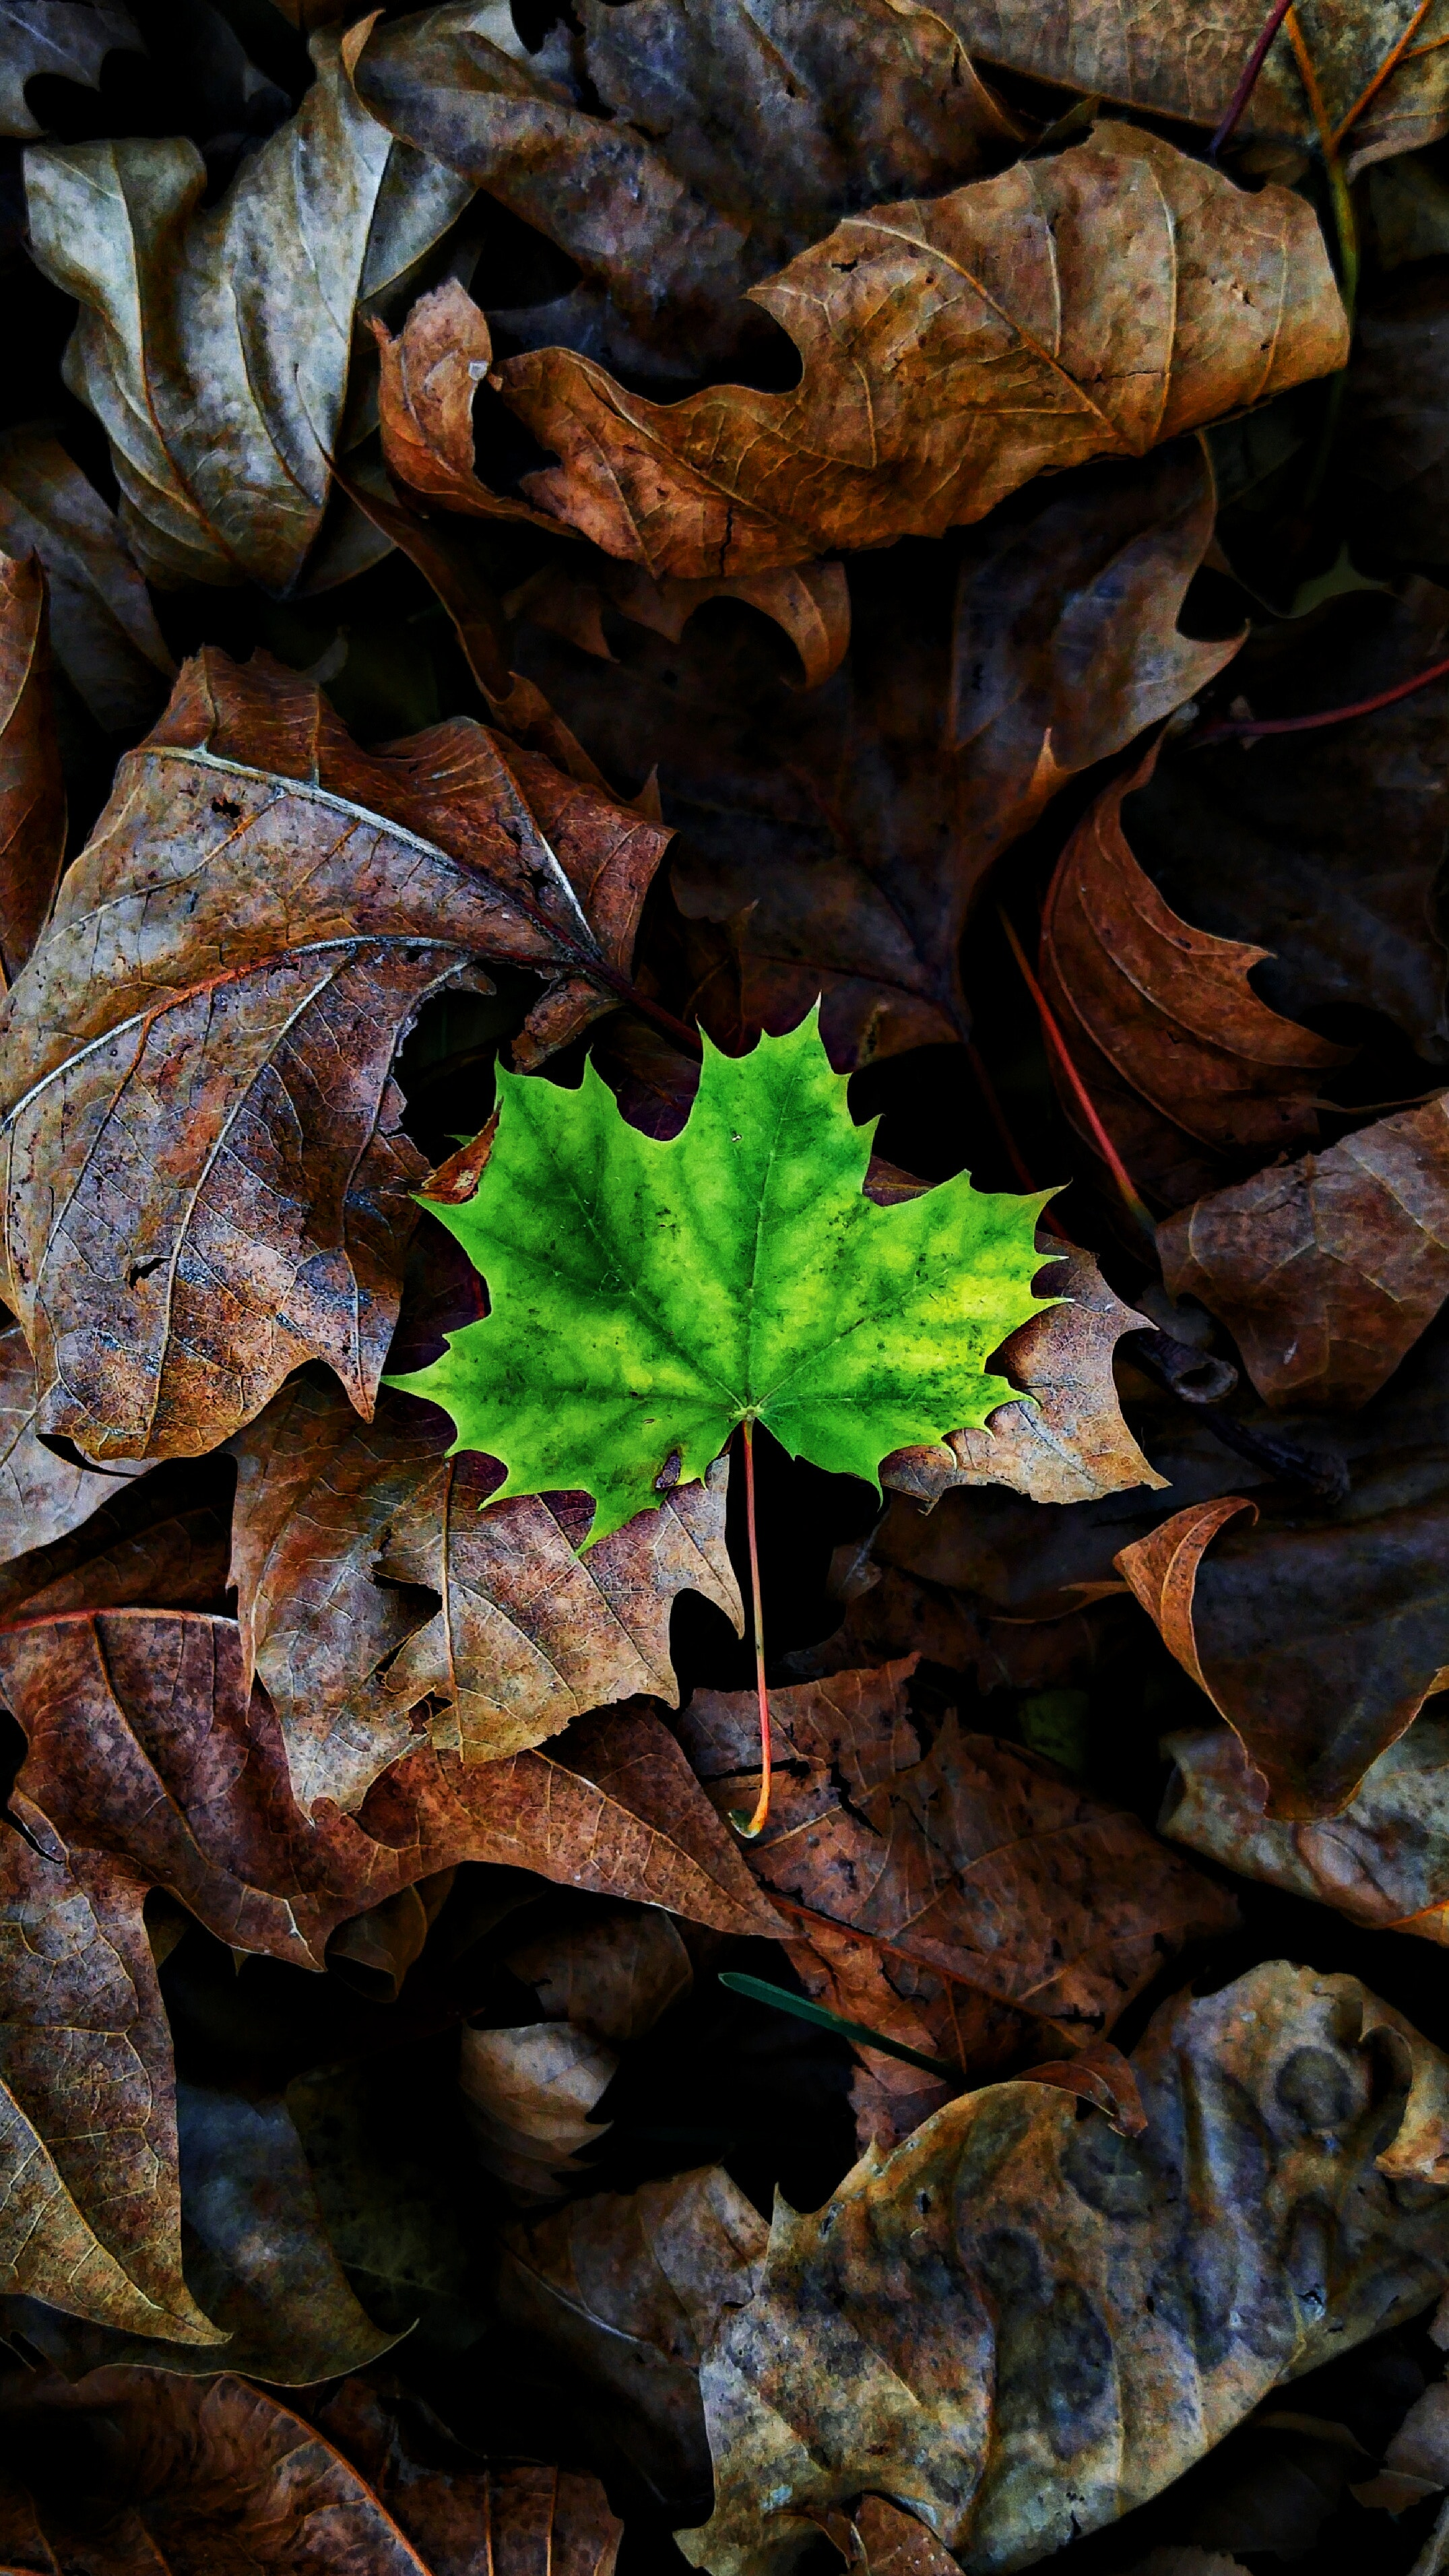 144261 download wallpaper Nature, Sheet, Leaf, Maple, Autumn, Fallen screensavers and pictures for free